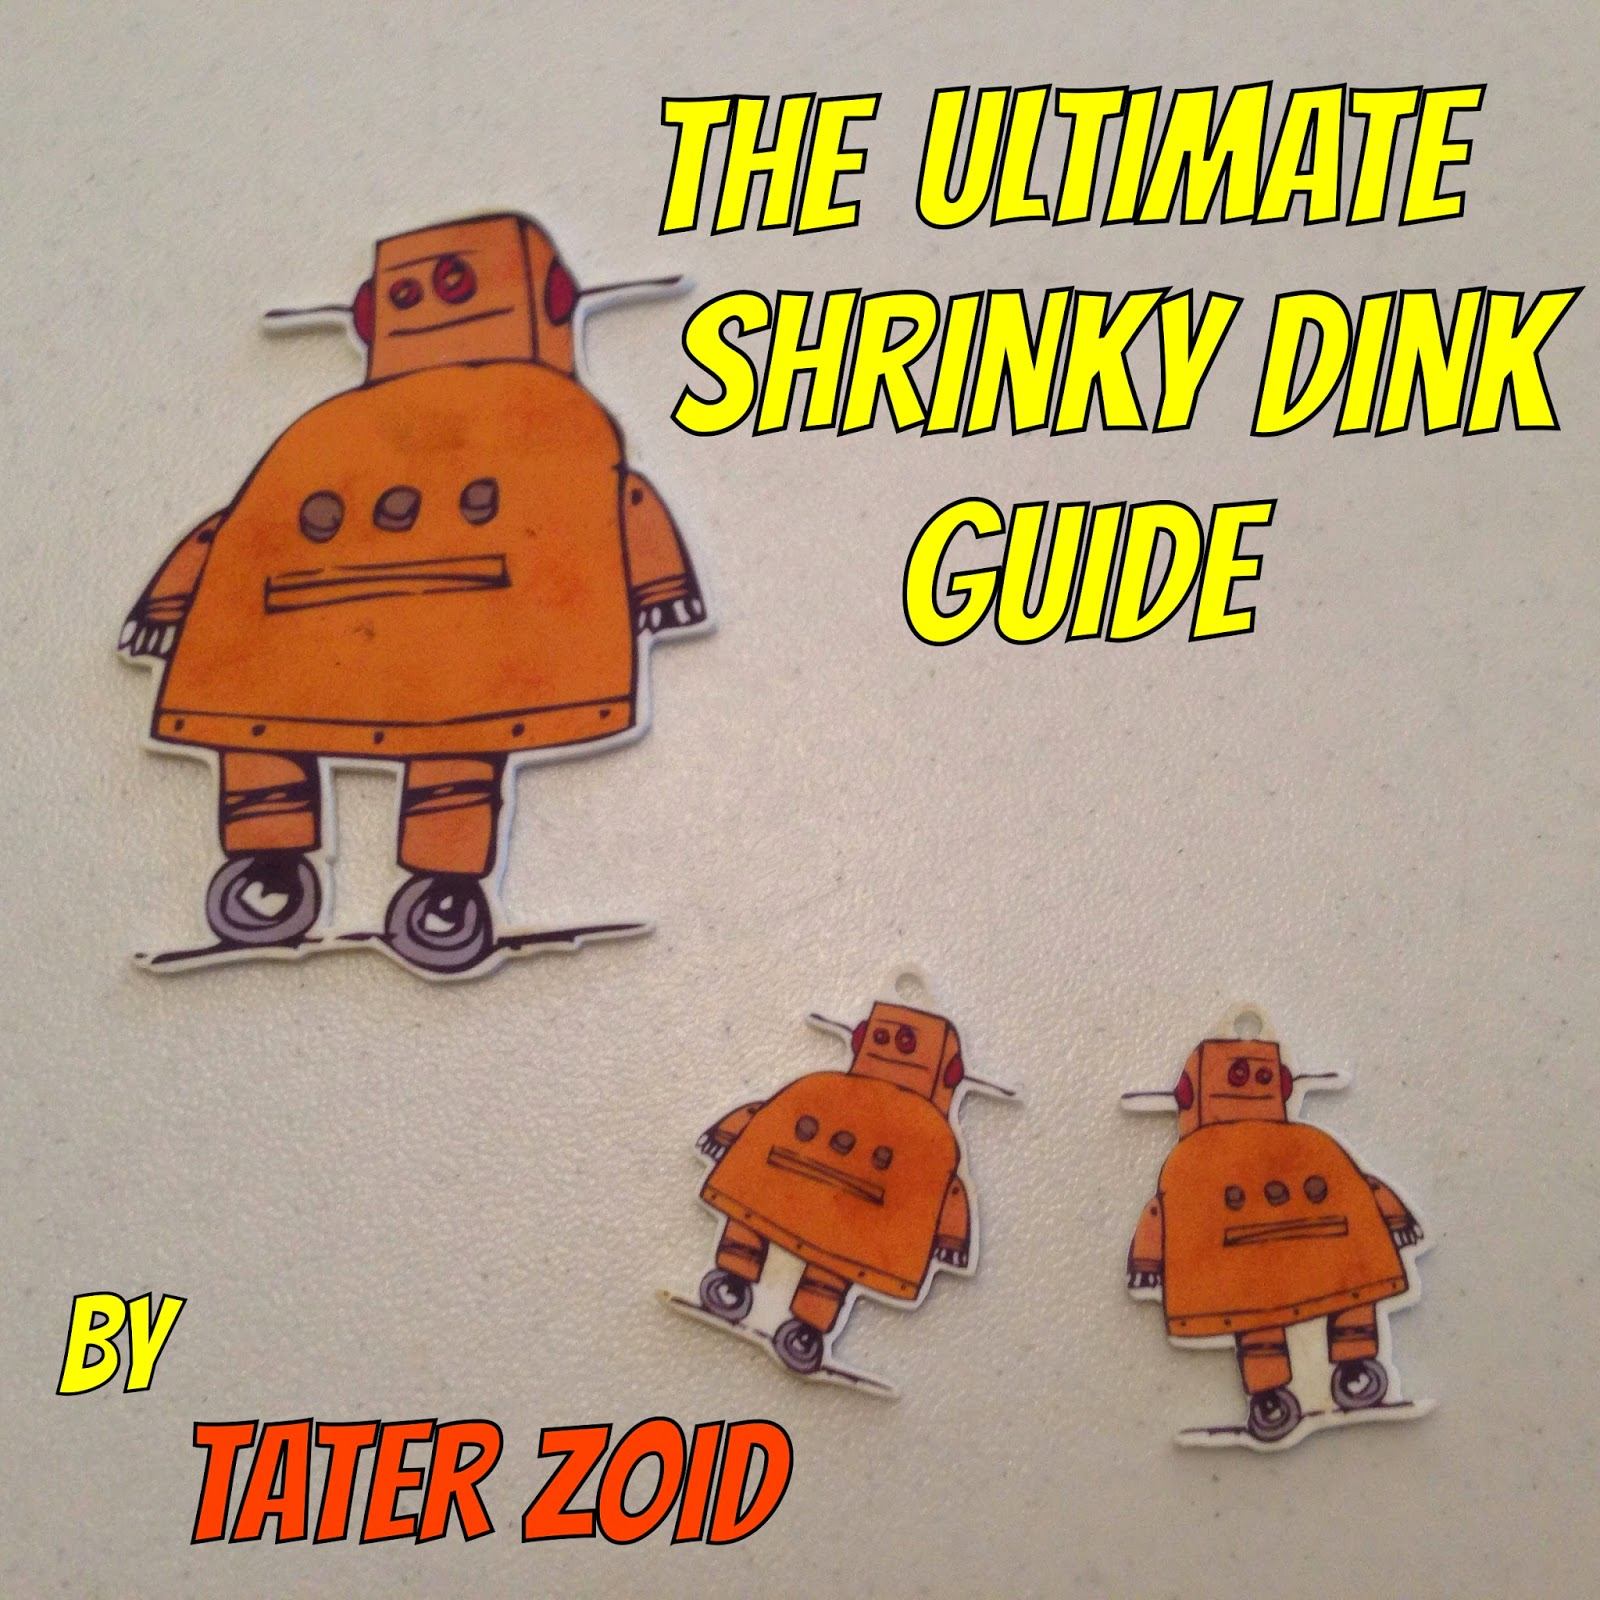 http://www.instructables.com/id/The-Ultimate-Shrinky-Dink-Guide-InkJet-Version/